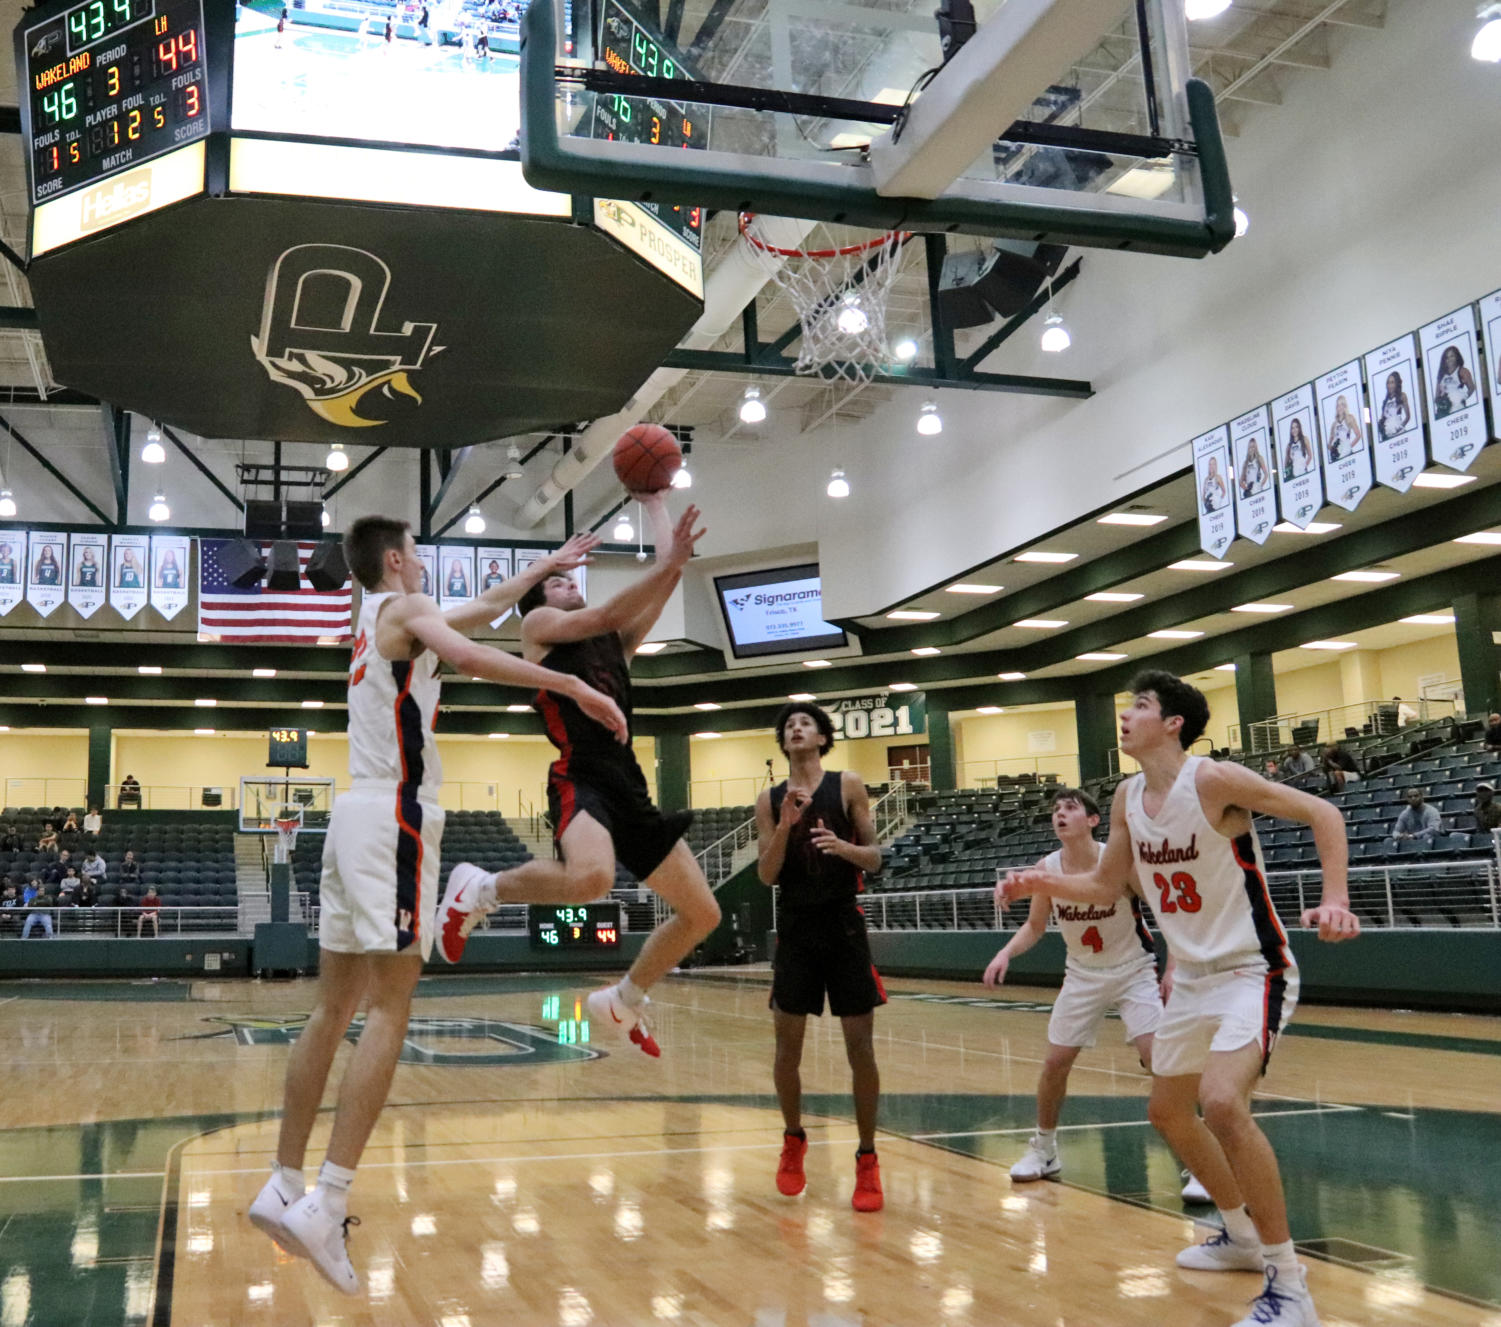 A Frisco Wakeland player tries to block Lake Highlands' shot. They played in this year's Sewell Prosper ISD Tournament Friday, Nov. 30. Lake Highland won against Wakeland, 62-60.